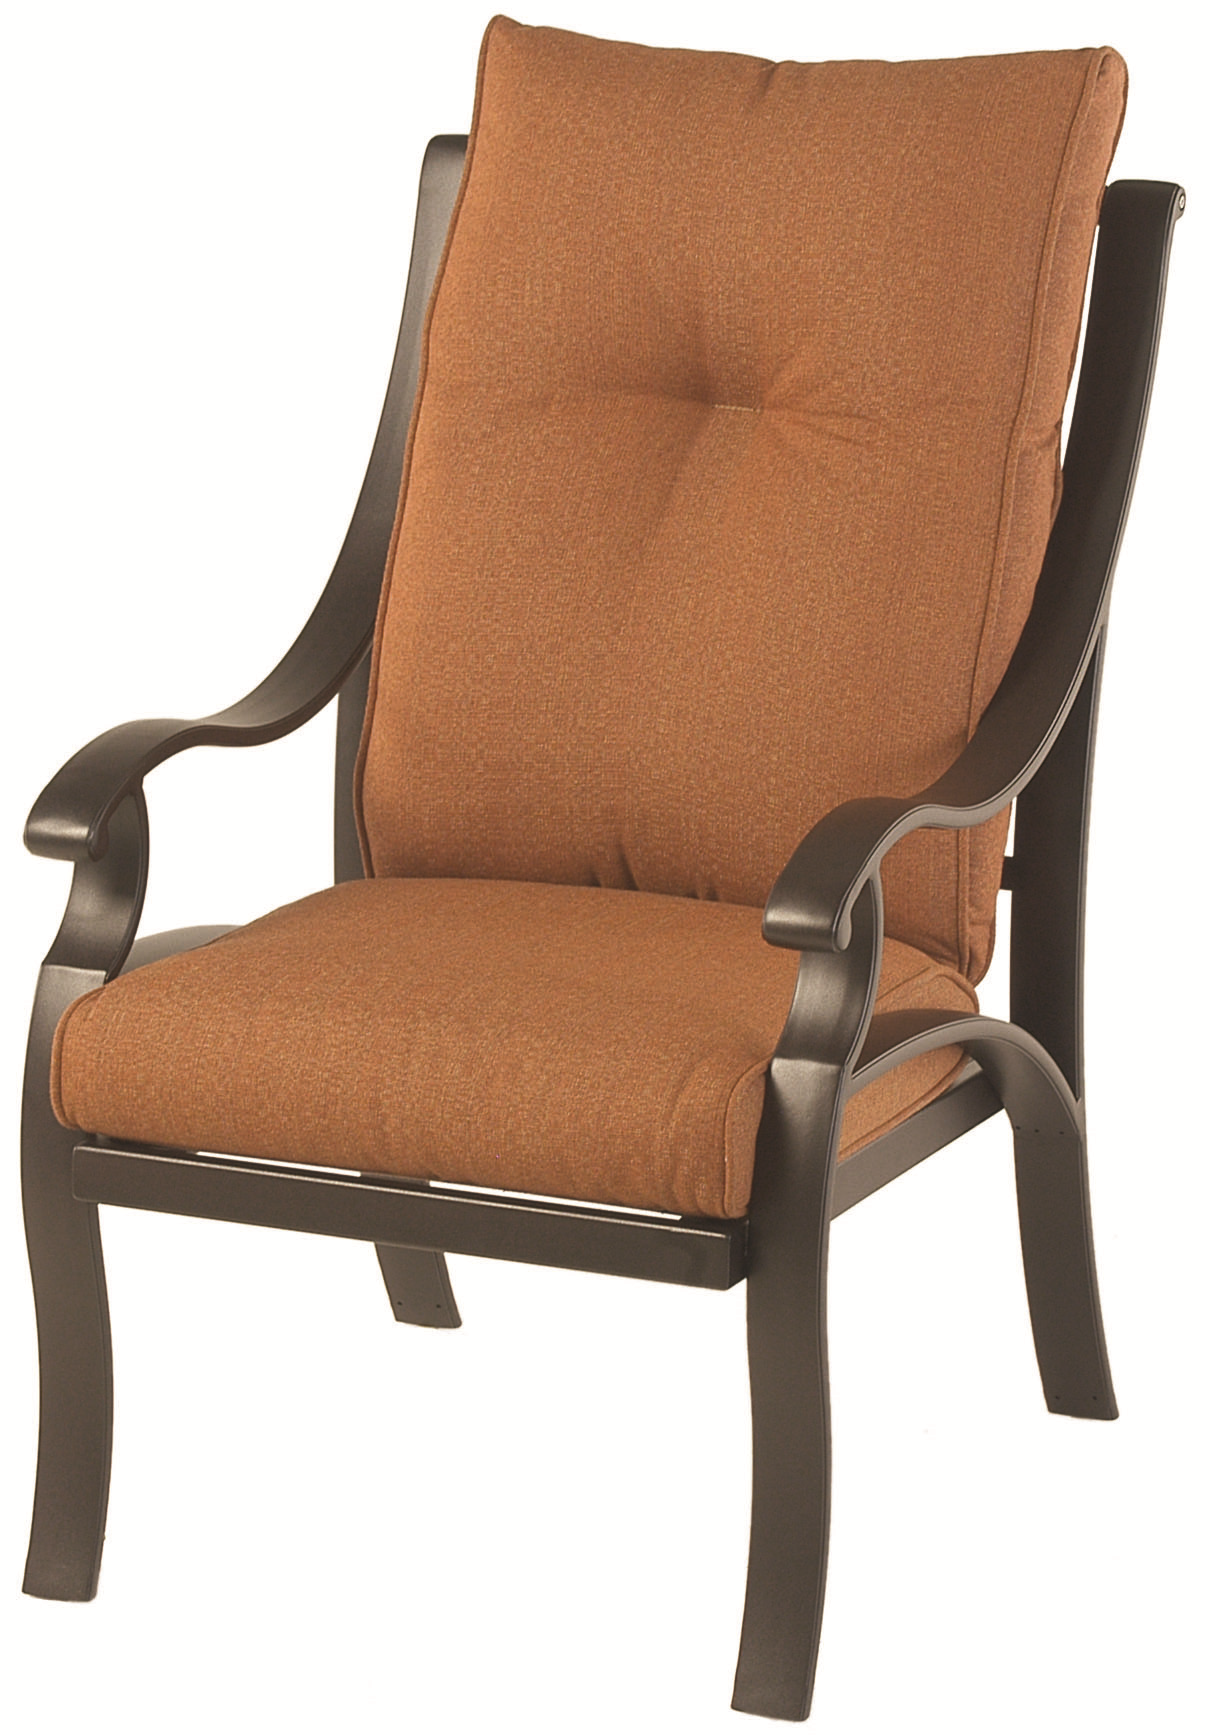 Somerset Dining Chair with Cushions